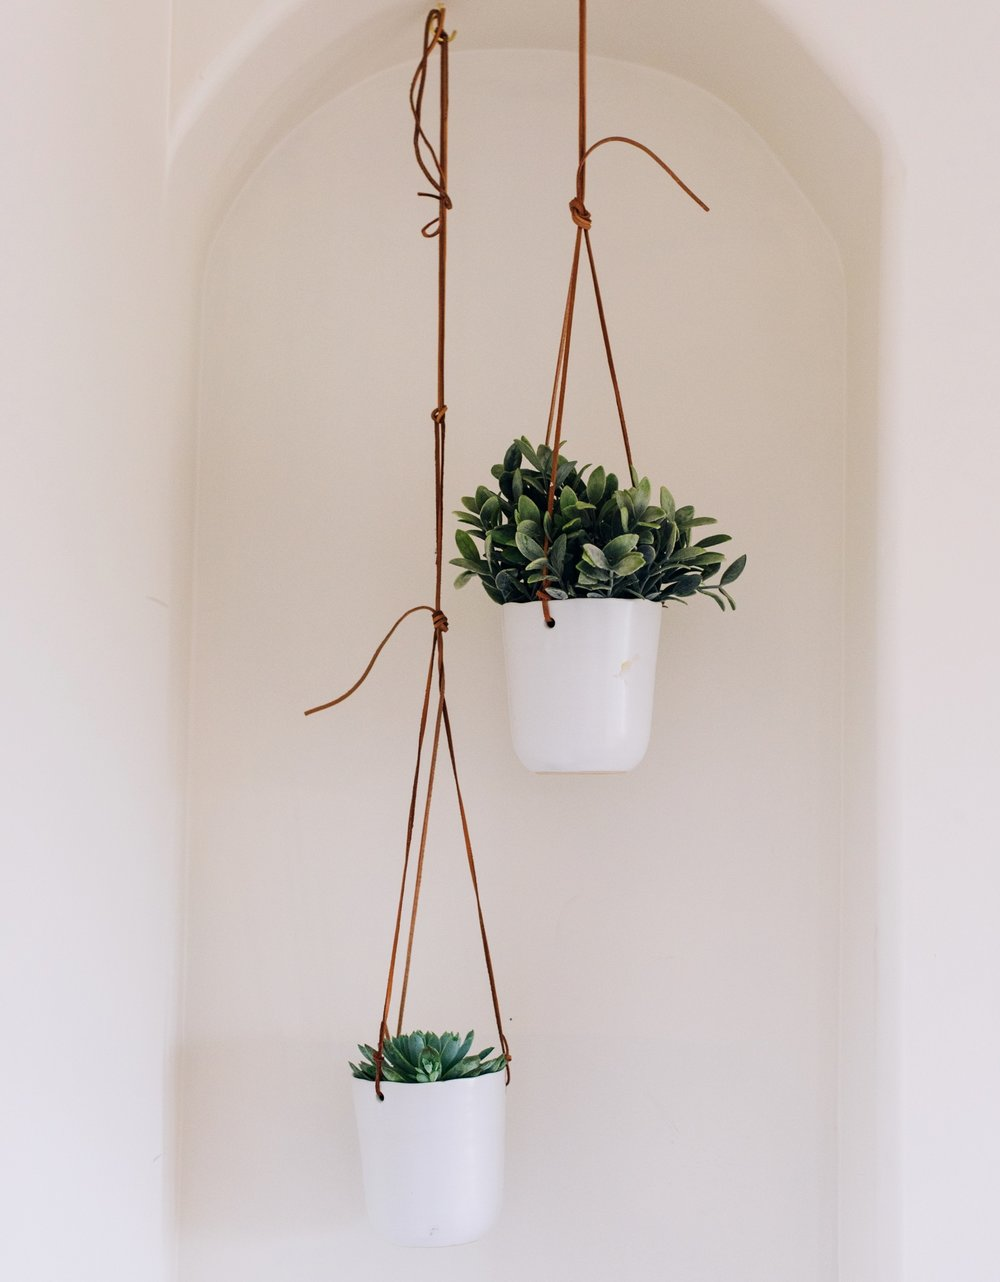 Leather Ceramic Hanging Planter x 2: Urban Outfitters Home  (I added additional leather to the low hanging planter)